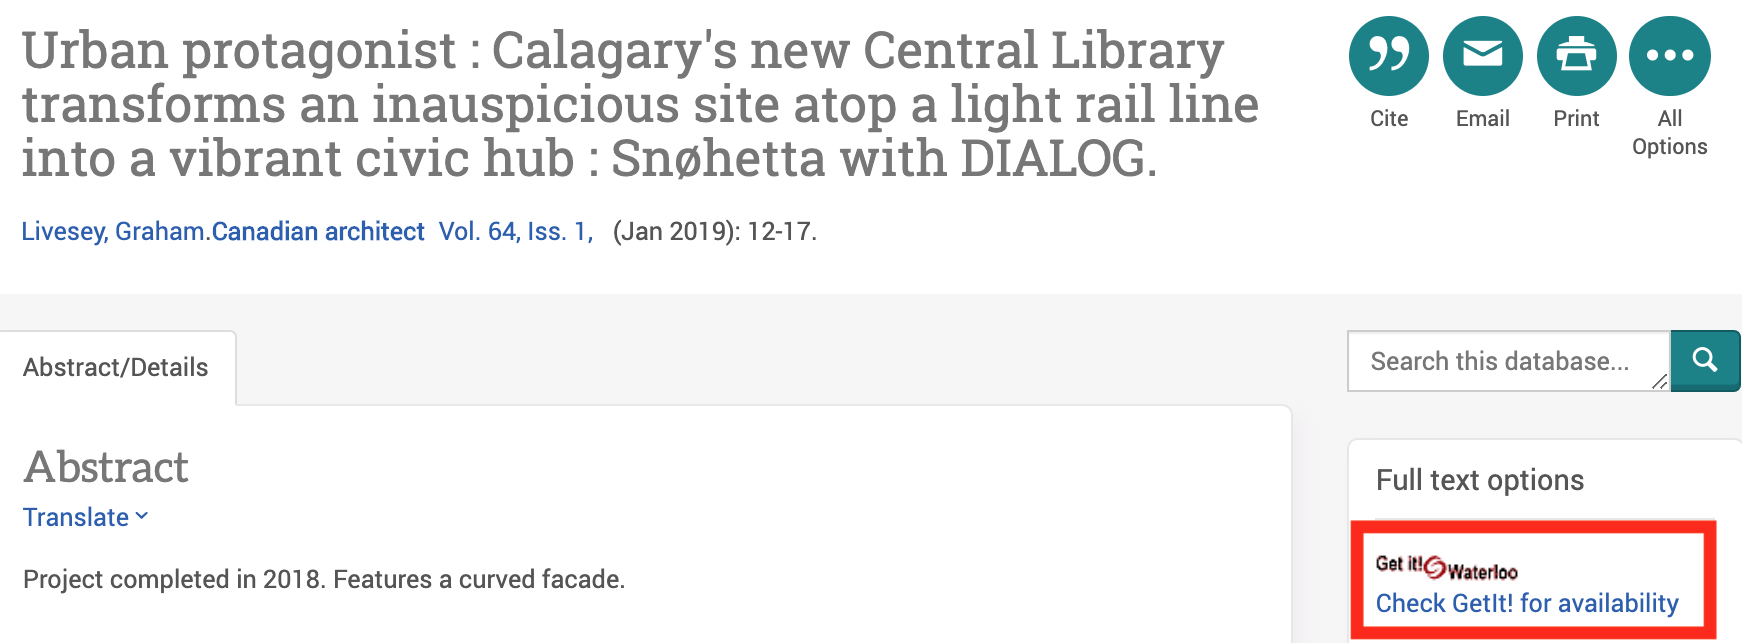 Screenshot of individual article record in Avery Index and GetIt!@Waterloo link